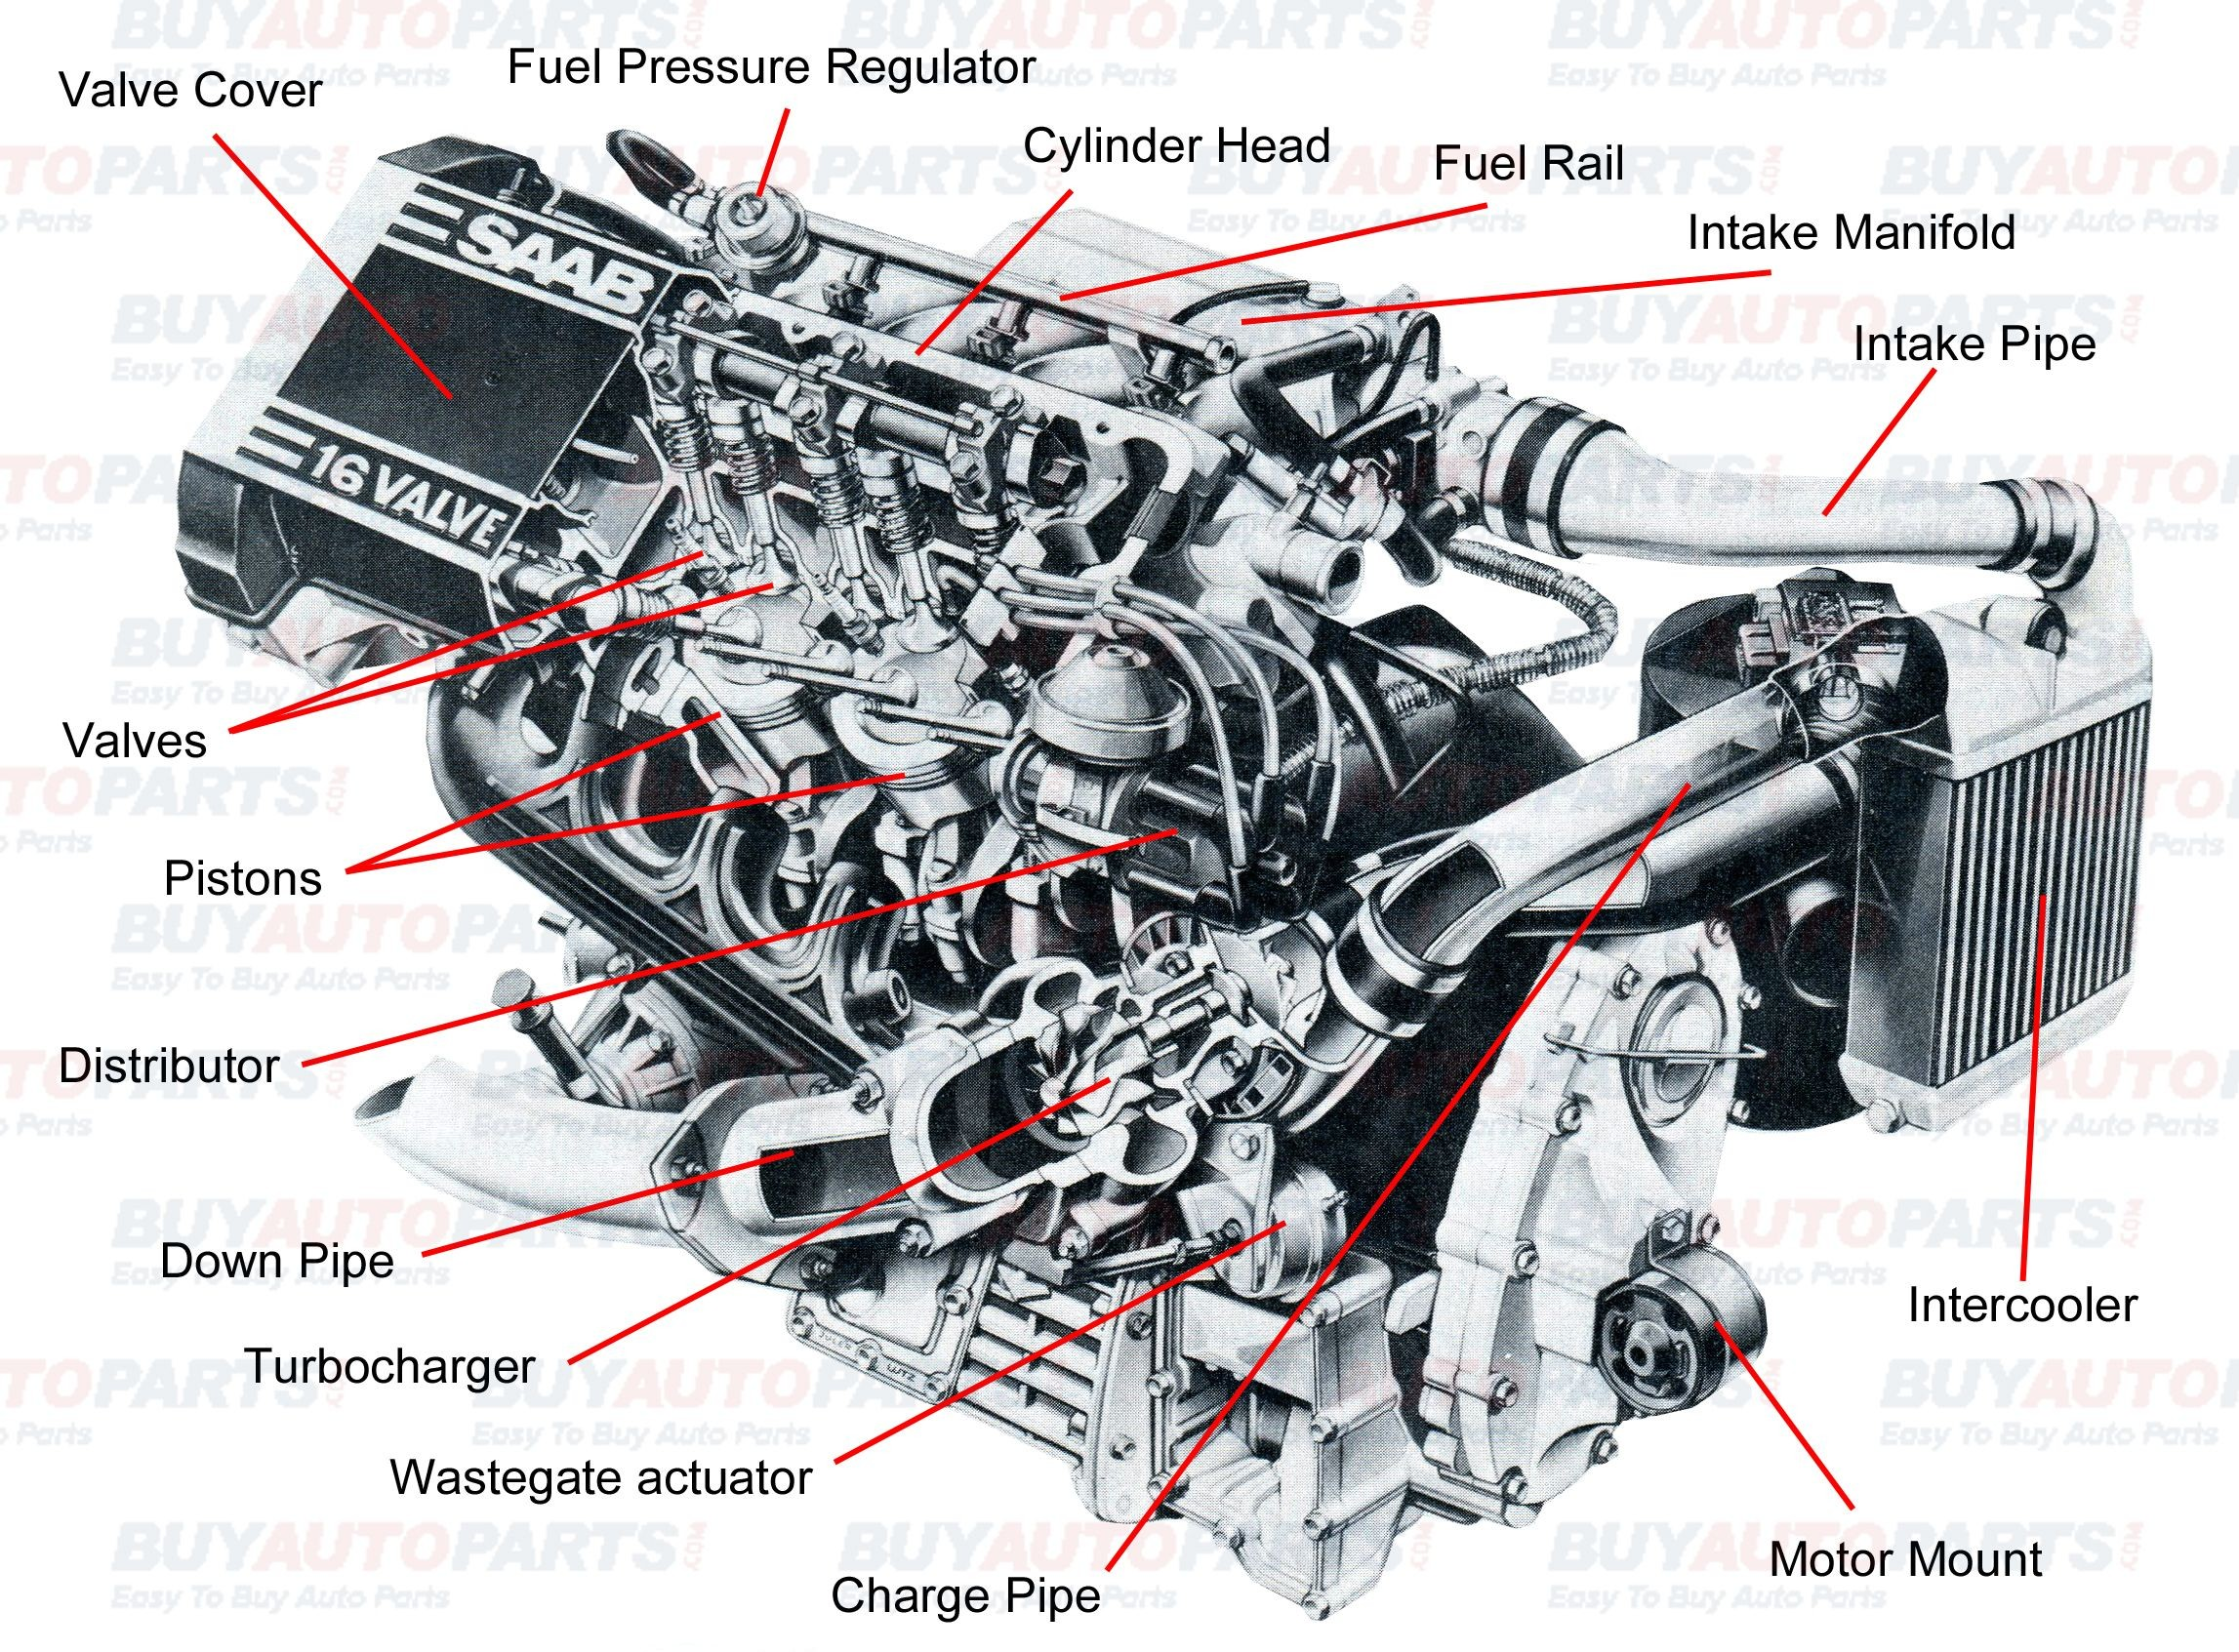 Diagram Of Car Body Parts Pin by Jimmiejanet Testellamwfz On What Does An Engine with Turbo Of Diagram Of Car Body Parts 2003 Cadillac Cts Serpentine Belt Diagram Auto